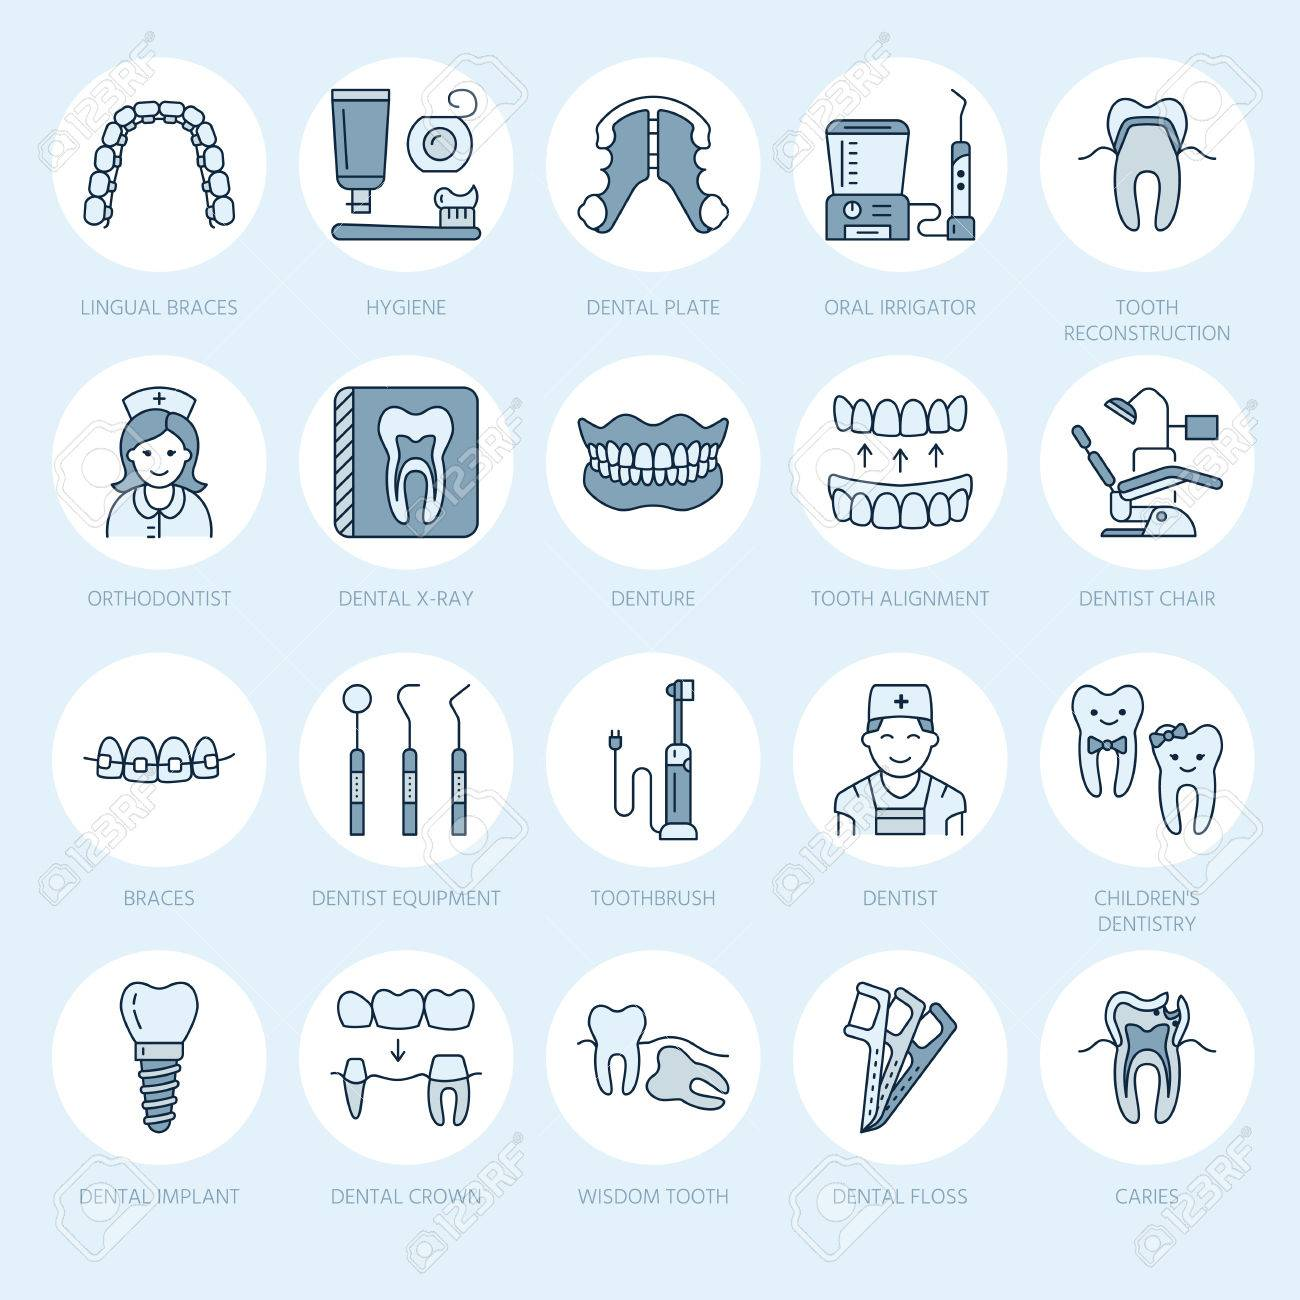 Dentist, orthodontics line icons. Dental care equipment, braces, tooth prosthesis, veneers, floss, caries treatment and other medical elements. Health care thin linear signs for dentistry clinic. - 72847826